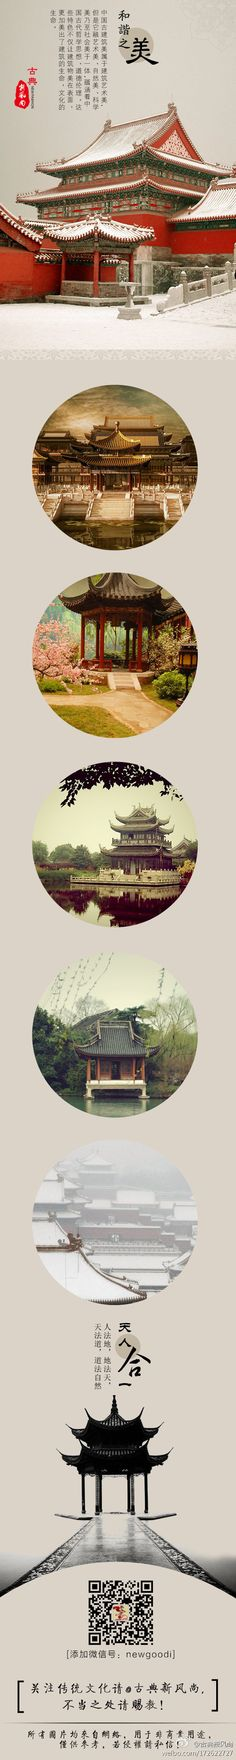 the harmonious beauty of Chinese buildings. 中国建筑